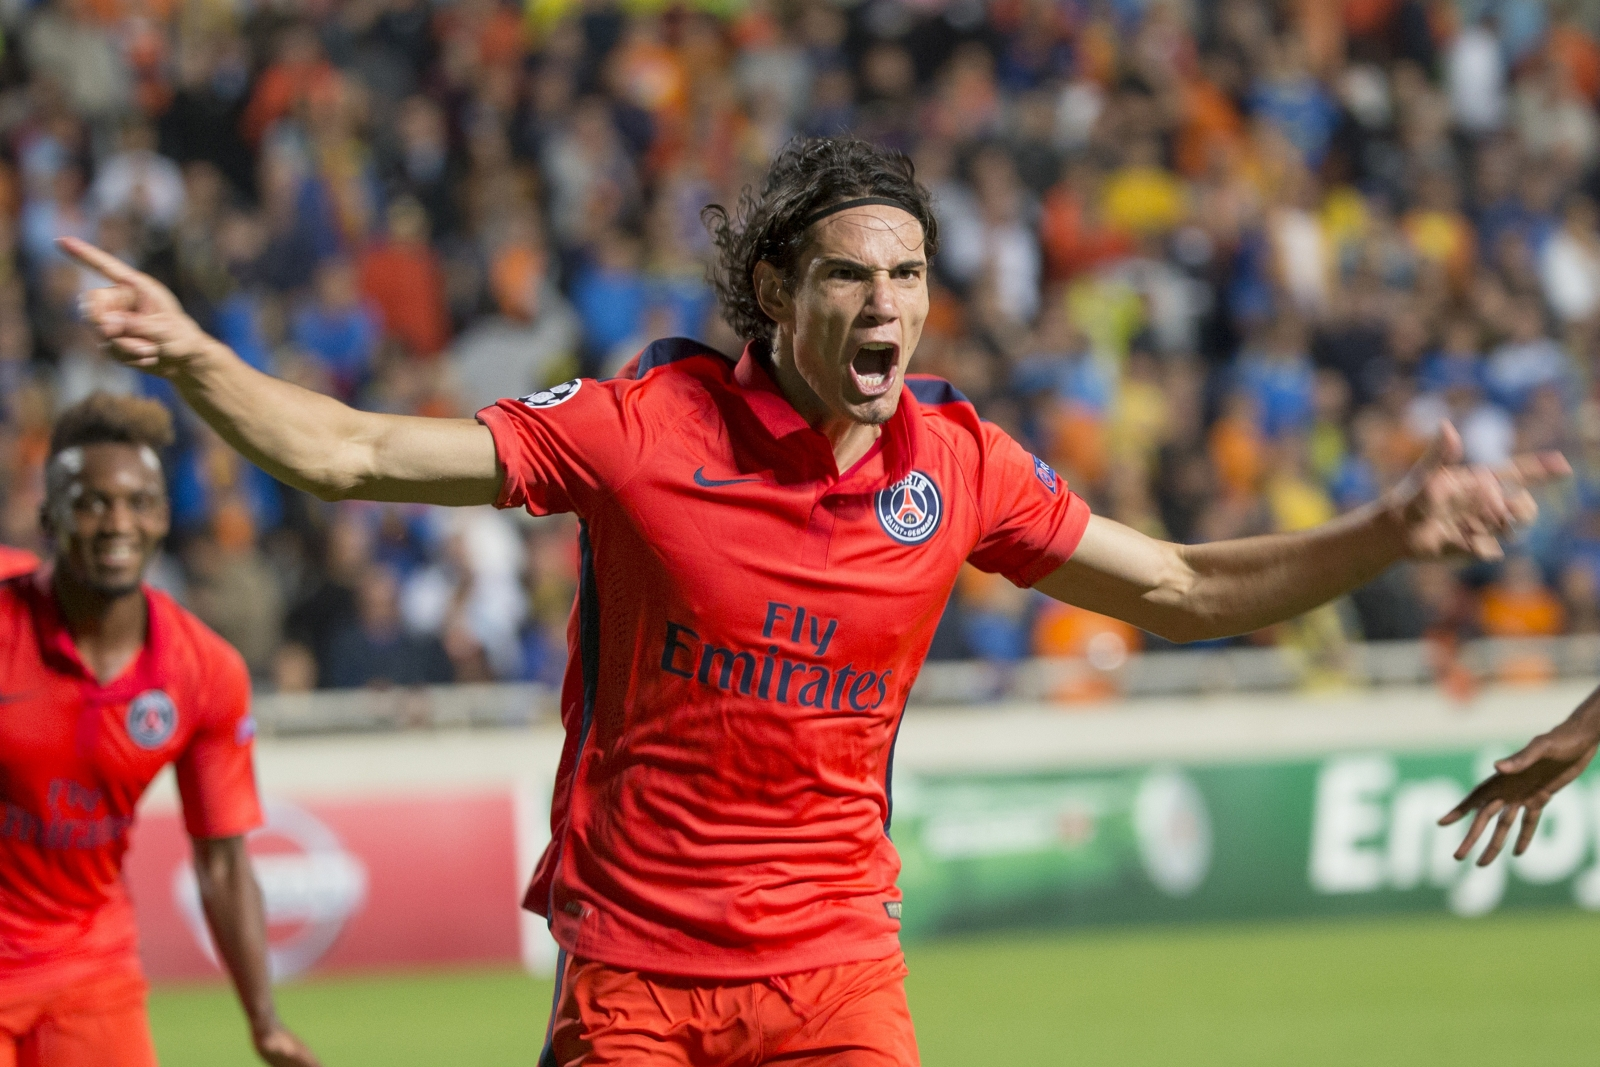 Manchester United to use Radamel Falcao in signing PSG star